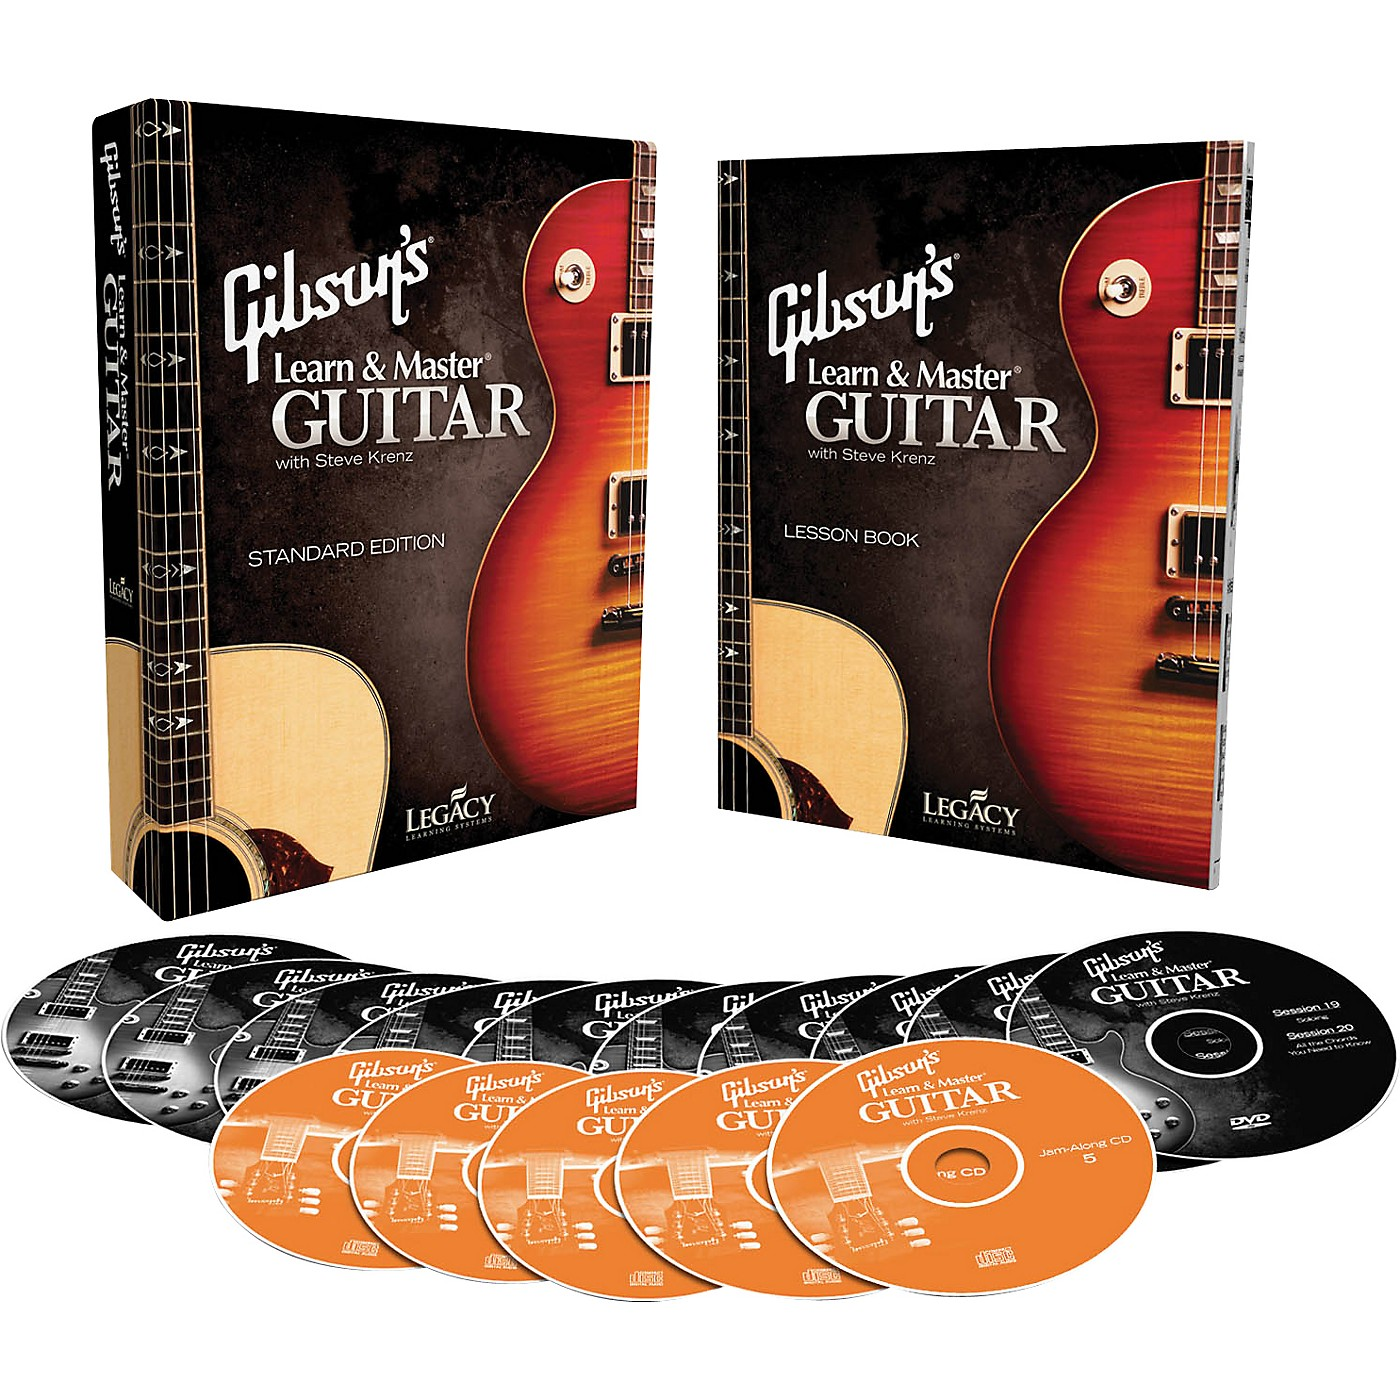 Hal Leonard Gibson's Learn & Master Guitar Boxed DVD/CD Set Legacy Of Learning Series thumbnail